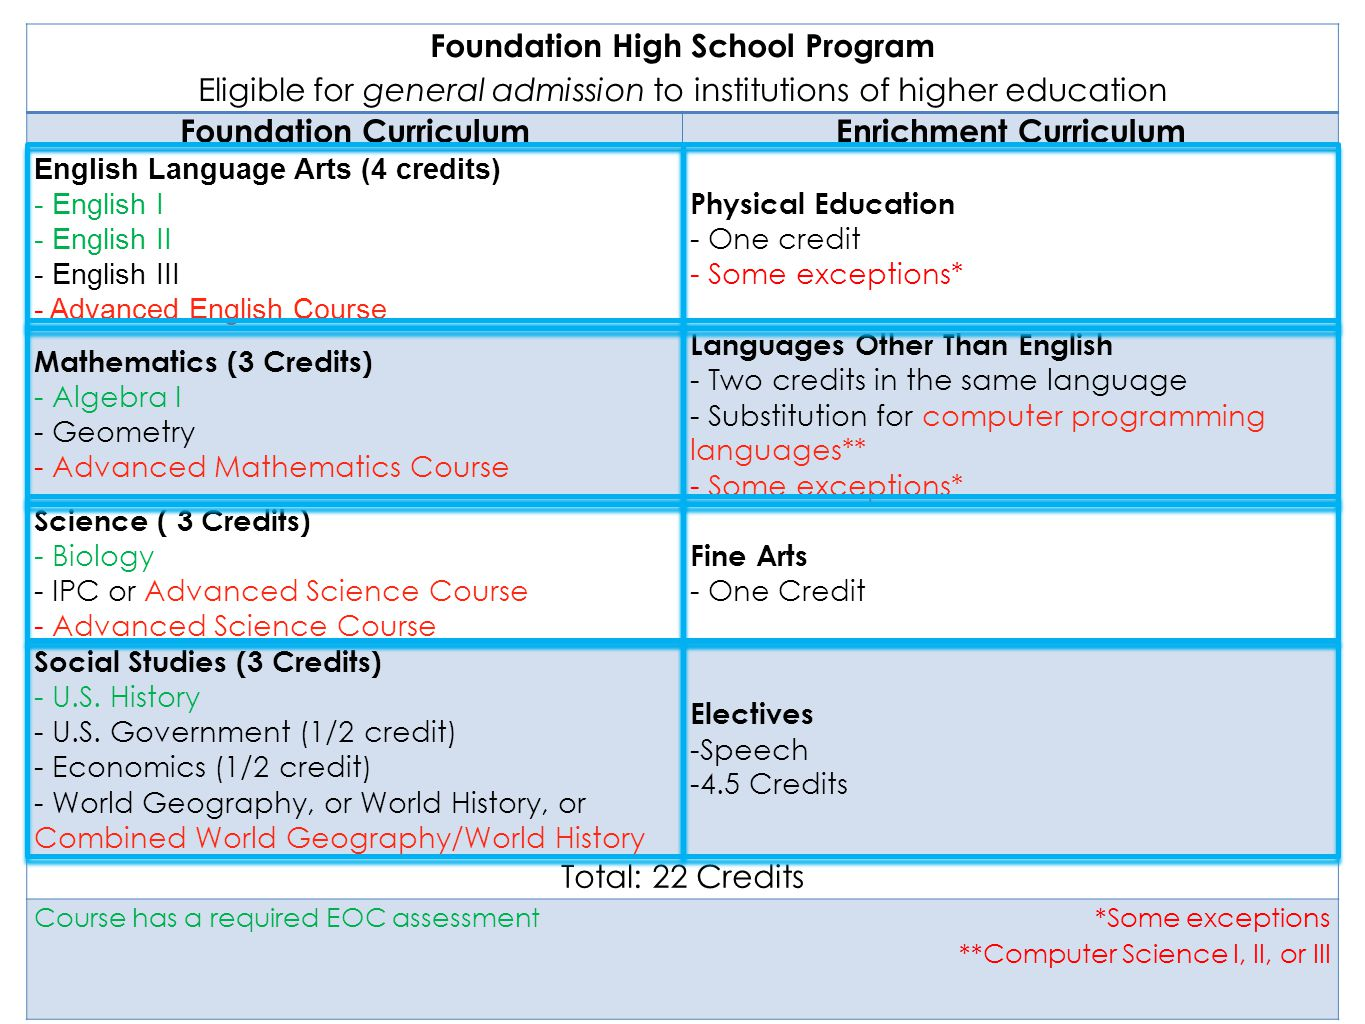 Foundation High School Program Eligible for general admission to institutions of higher education Foundation CurriculumEnrichment Curriculum English Language Arts (4 credits) - English I - English II - English III - Advanced English Course Physical Education - One credit - Some exceptions* Mathematics (3 Credits) - Algebra I - Geometry - Advanced Mathematics Course Languages Other Than English - Two credits in the same language - Substitution for computer programming languages** - Some exceptions* Science ( 3 Credits) - Biology - IPC or Advanced Science Course - Advanced Science Course Fine Arts - One Credit Social Studies (3 Credits) - U.S.